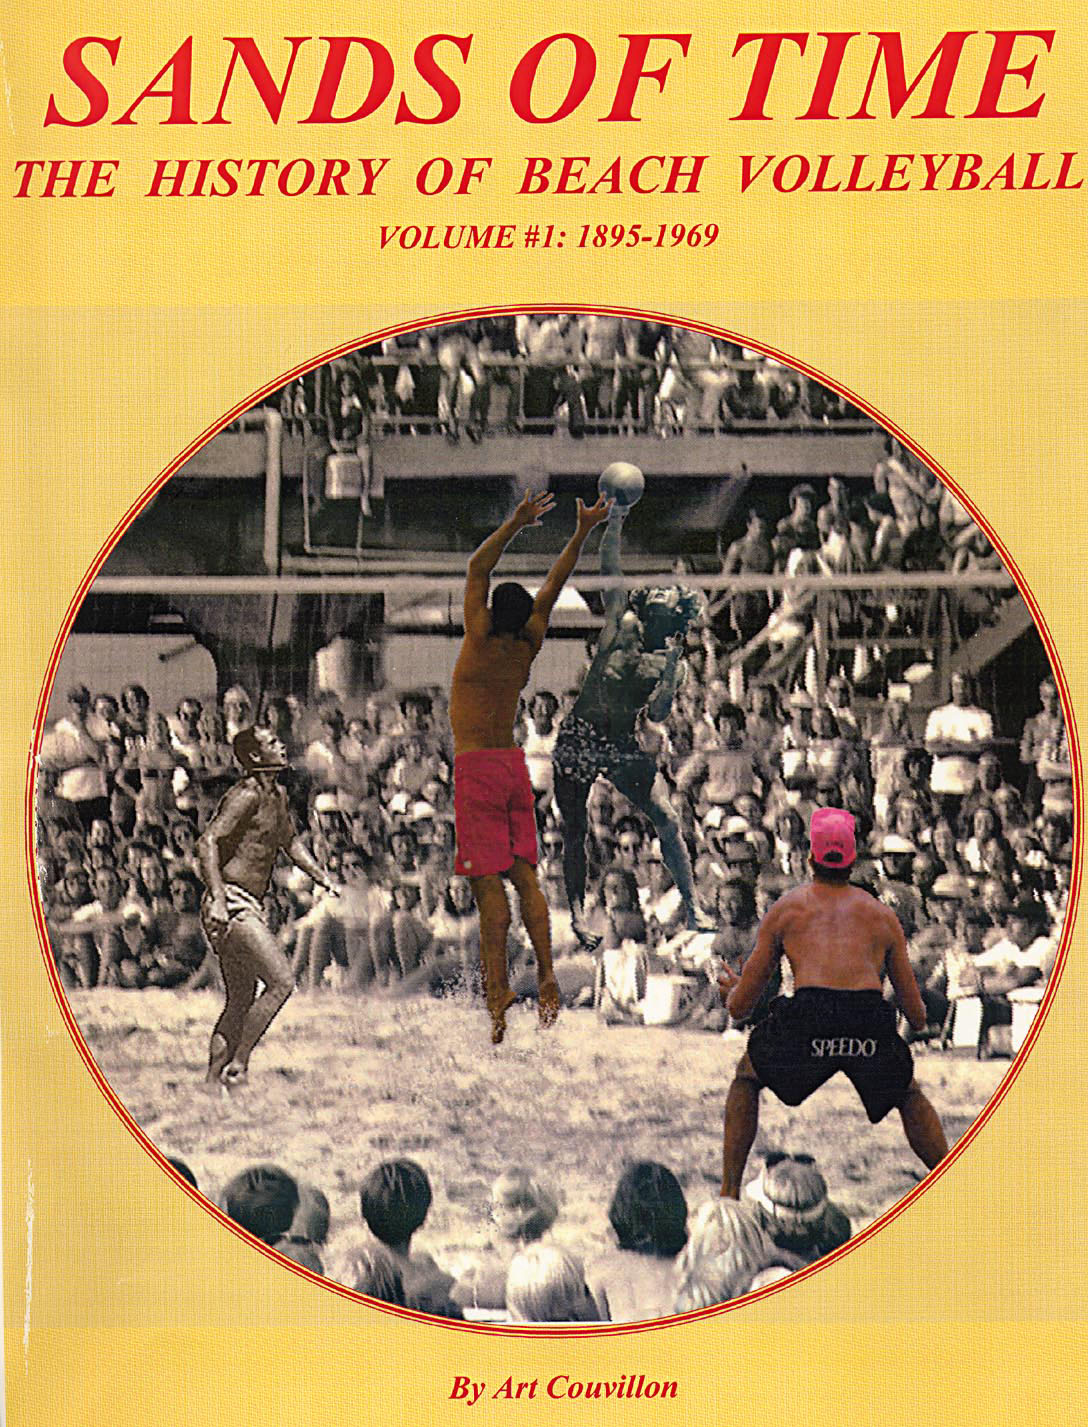 Sands of Time - The history of beach volleyball Vol #1